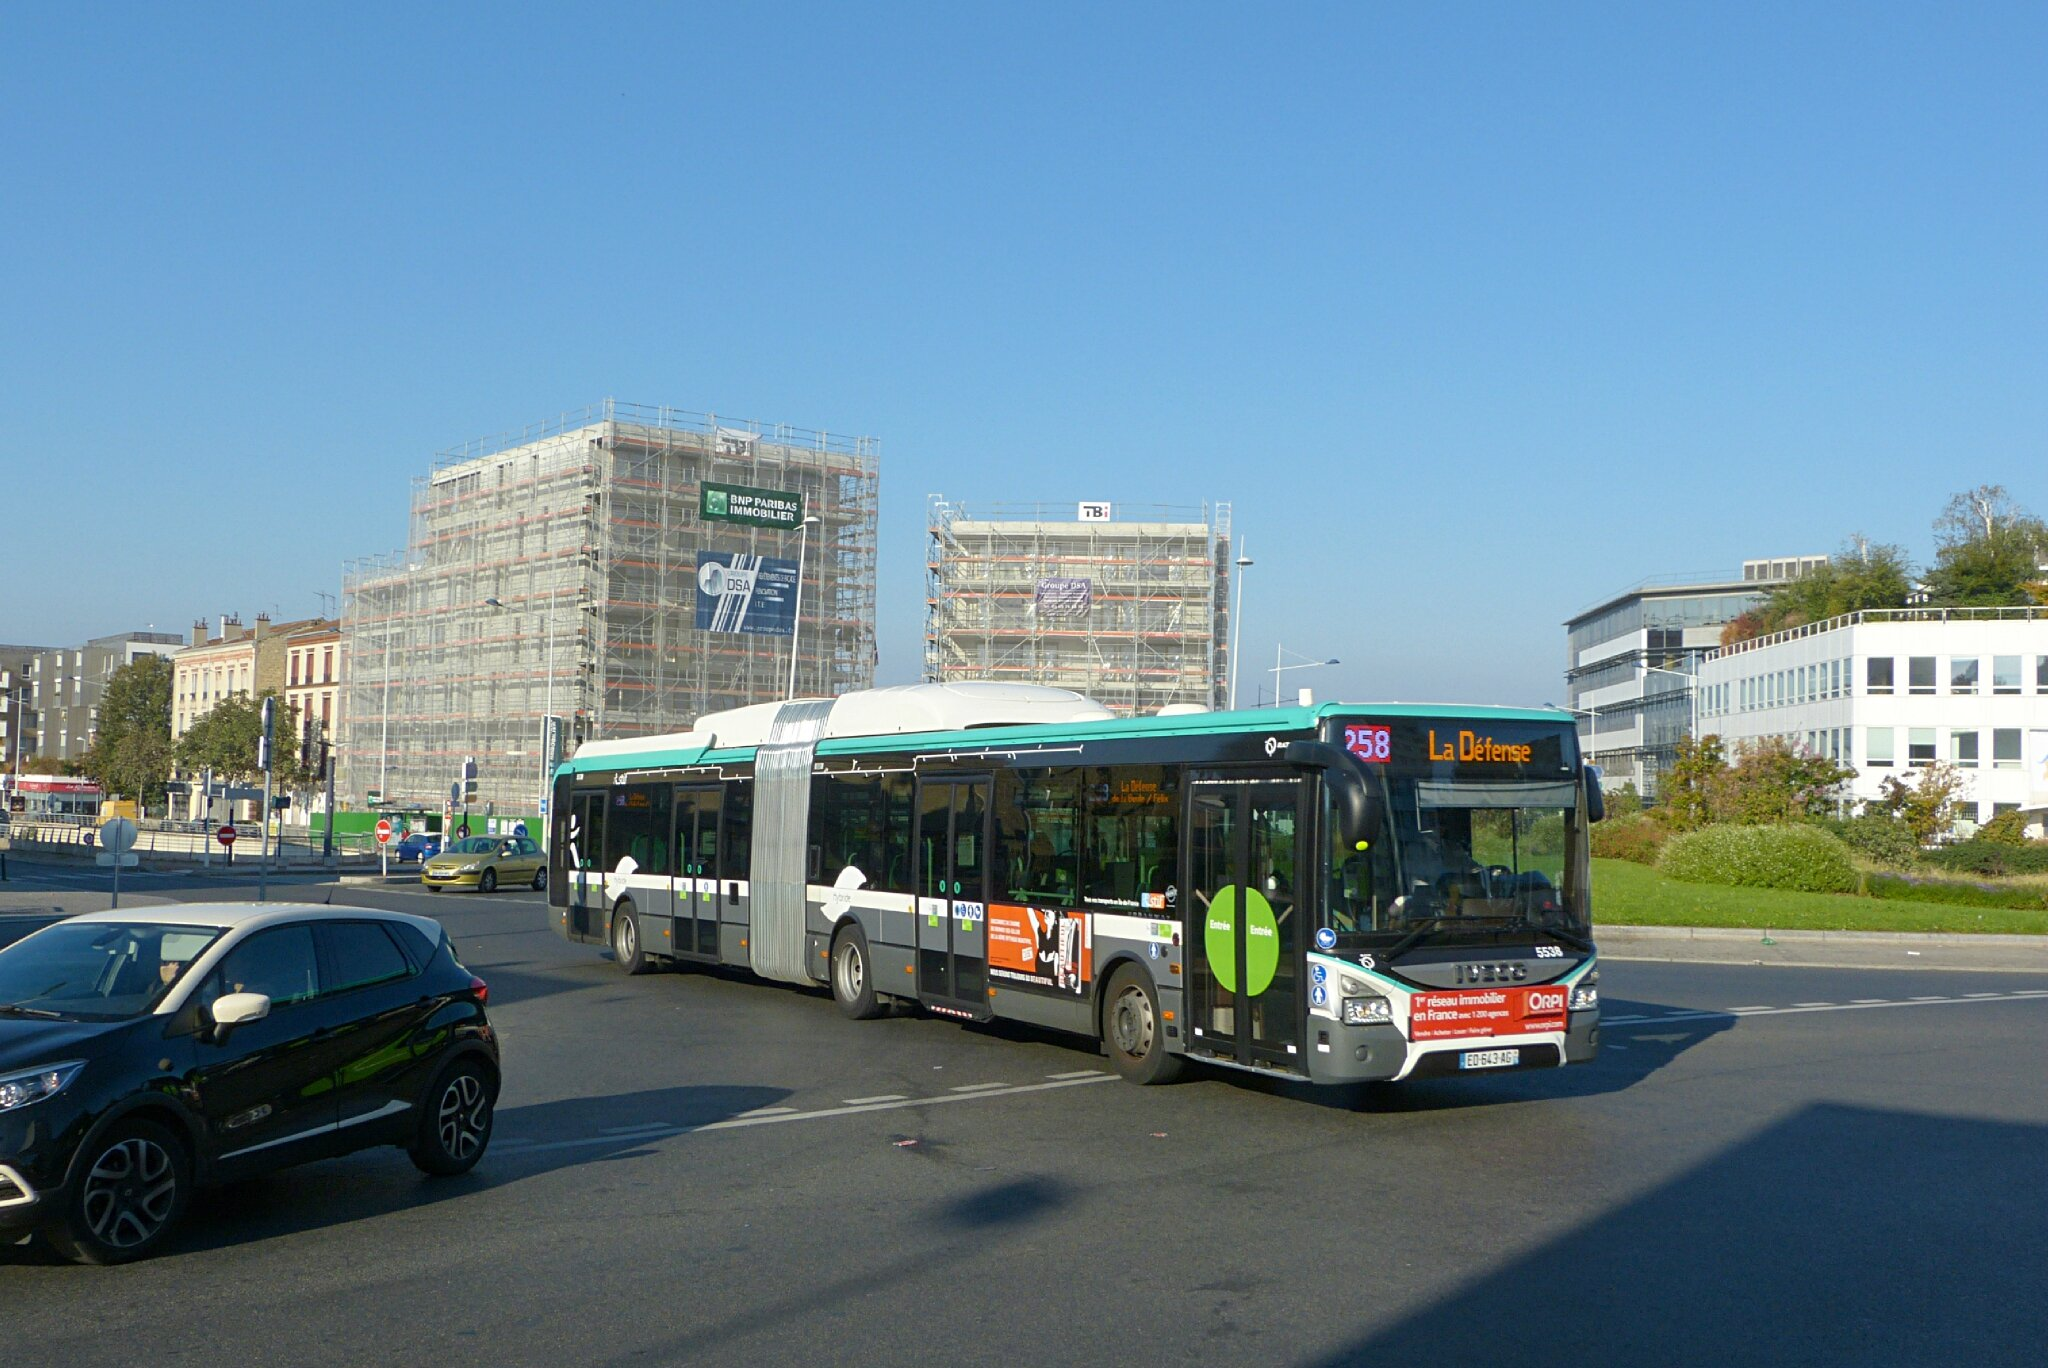 Bus Pas Cher Nantes Paris Trajet En Bus Paris Bus Paris Londres Pas Cher D S 14